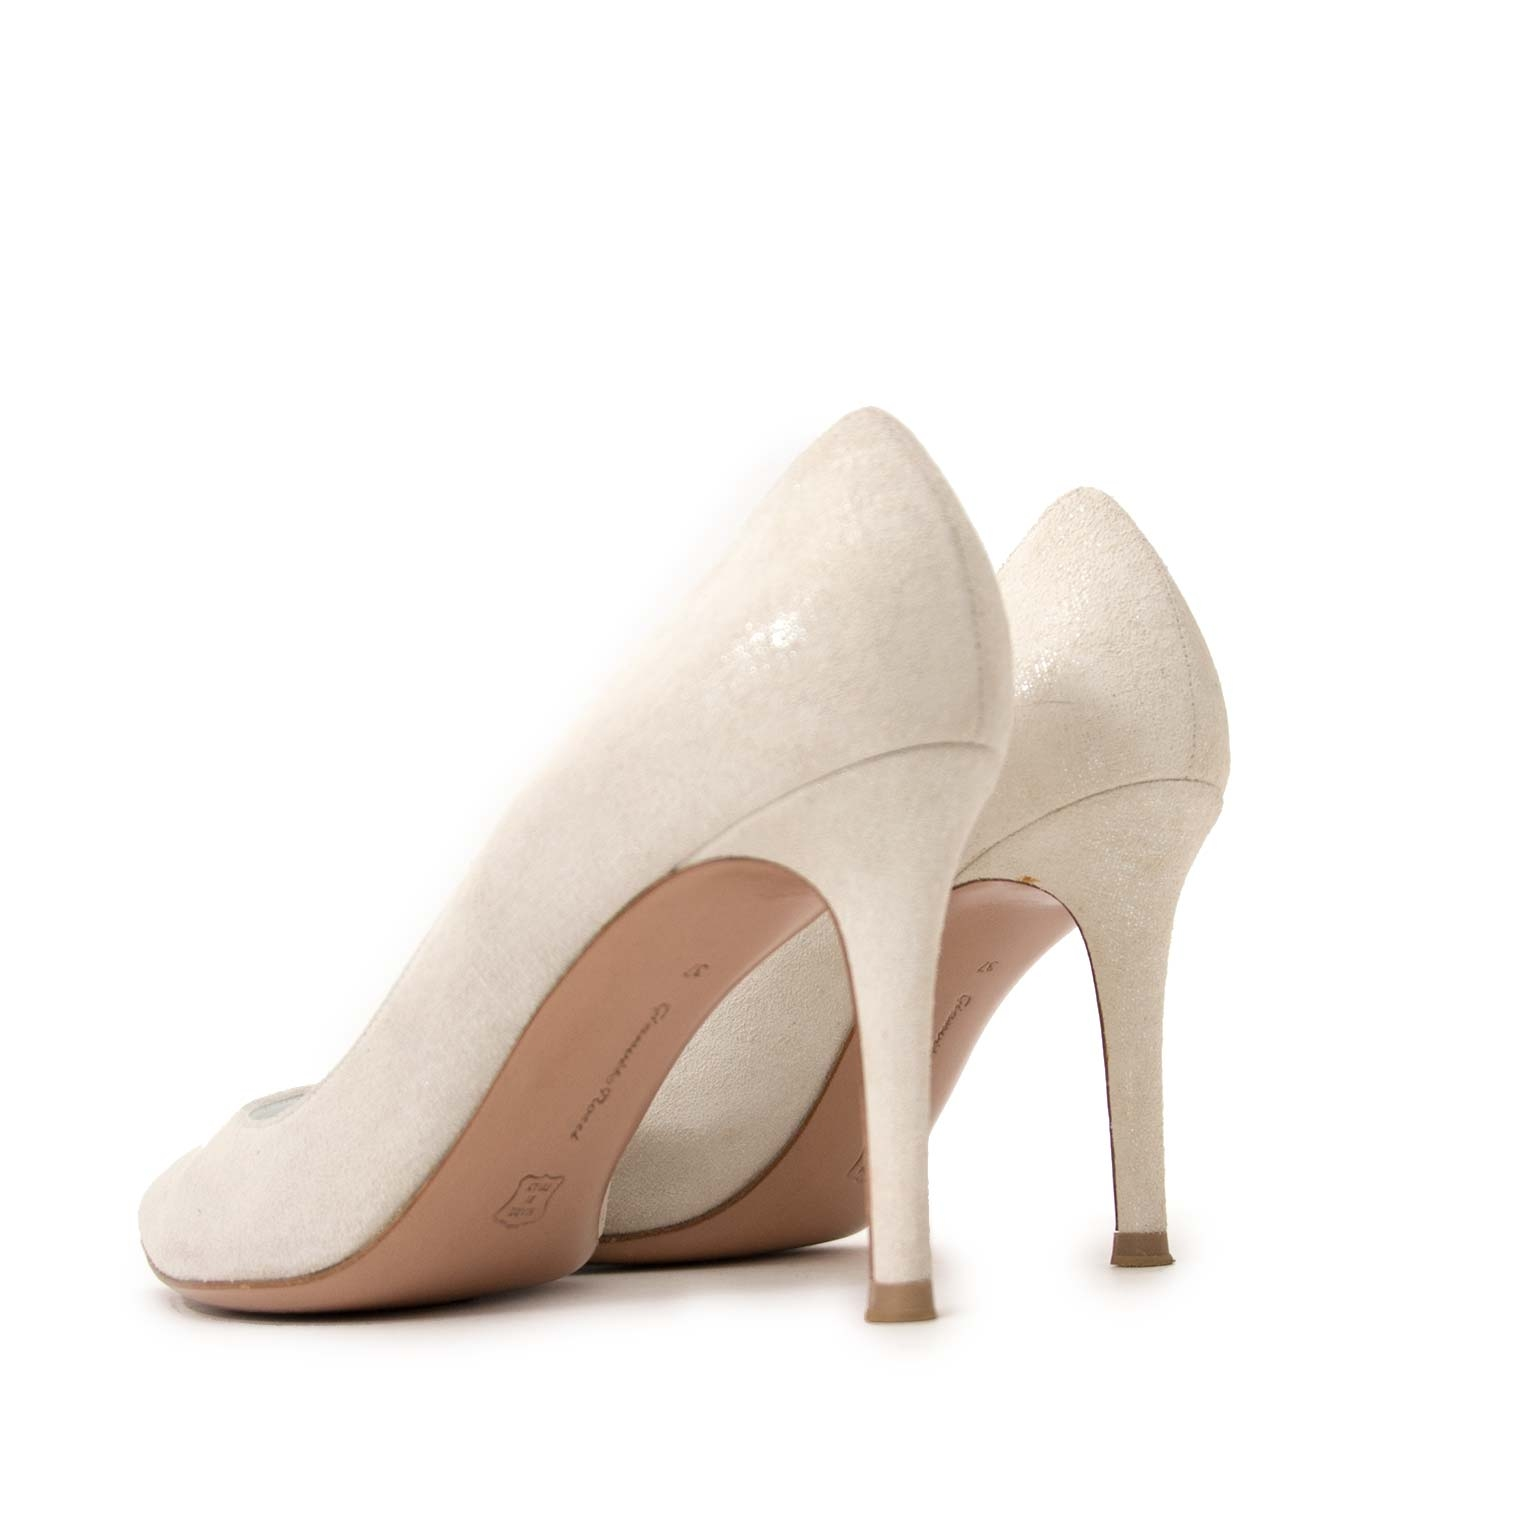 Gianvito Rossi White Metallic Pumps - size 37 for the best price at Labellov secondhand luxury